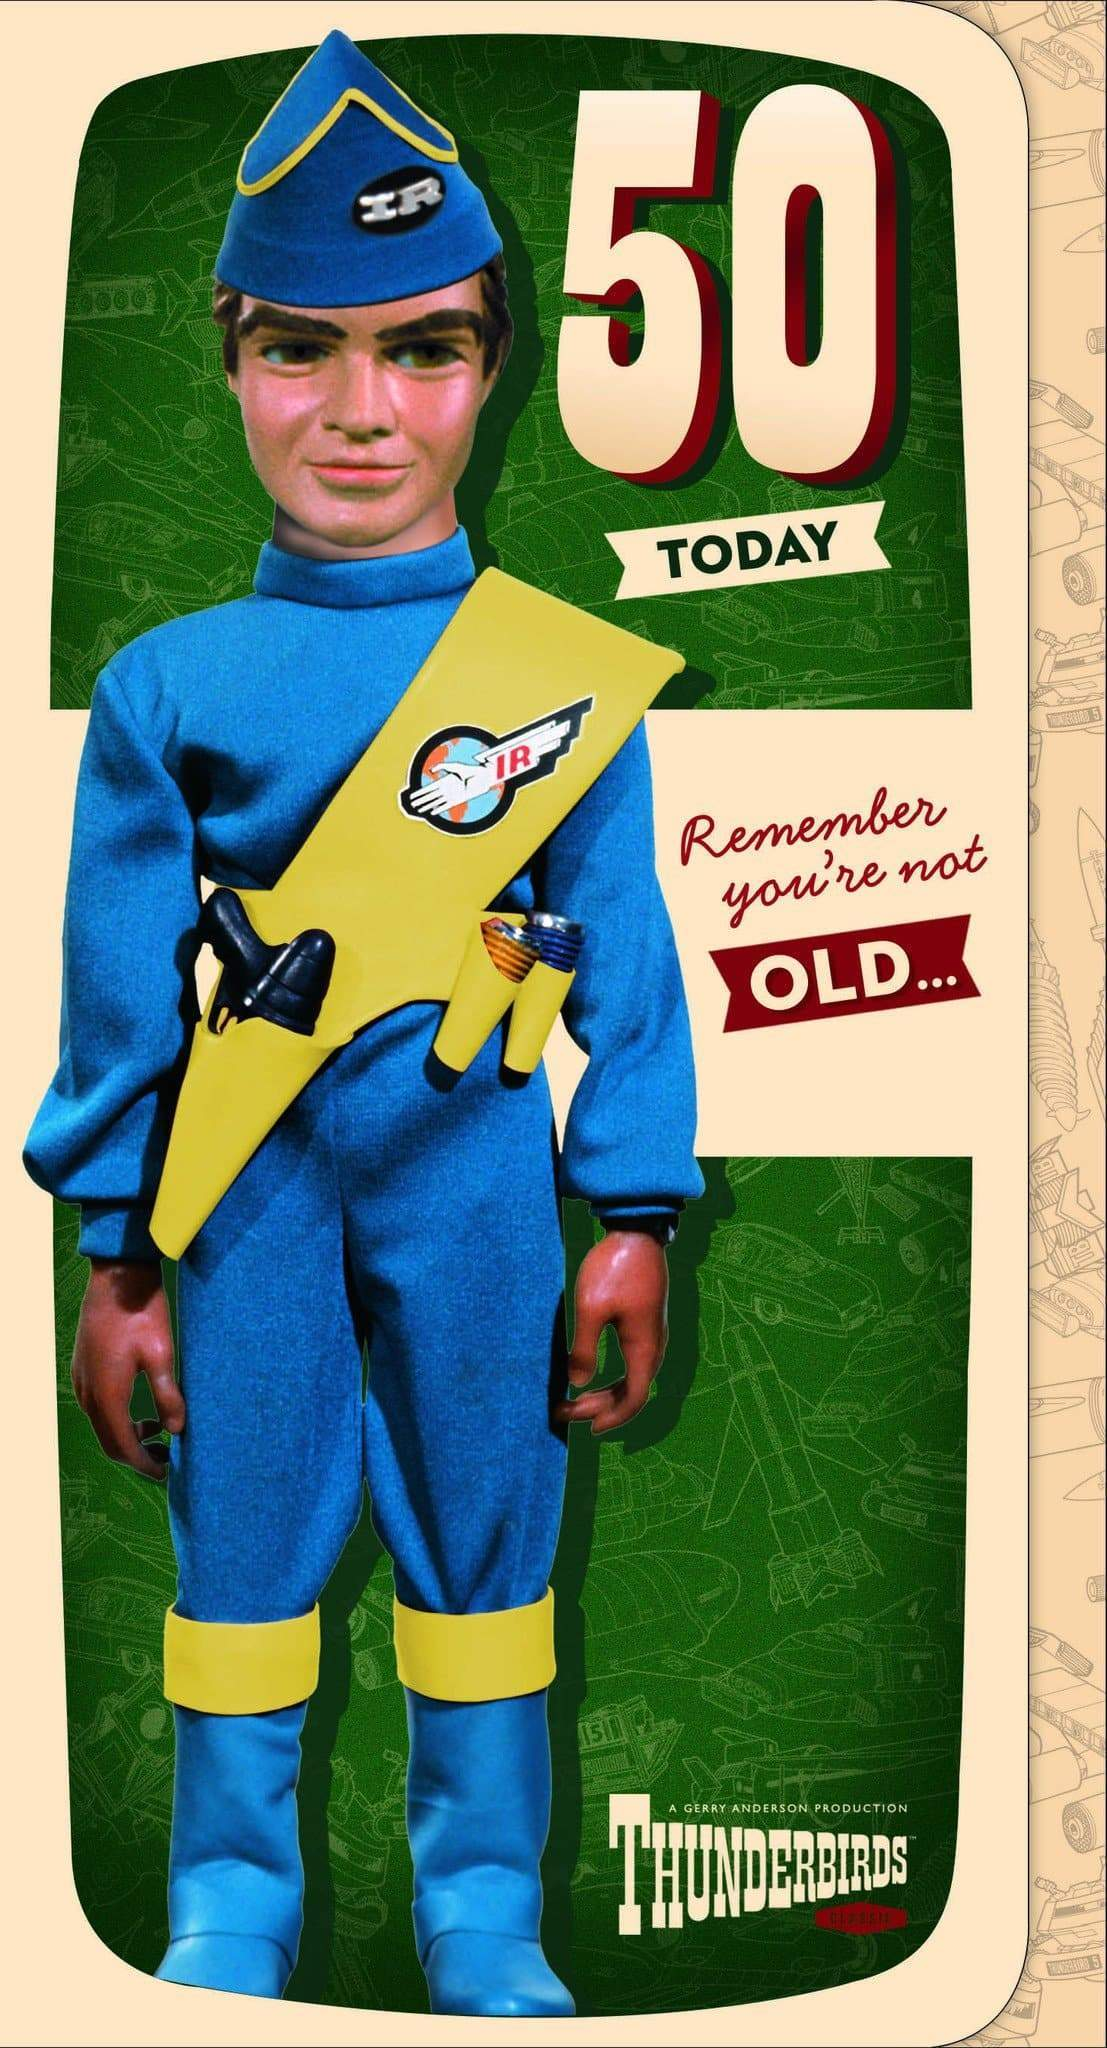 Thunderbirds Age 50 Birthday Card - The Gerry Anderson Store